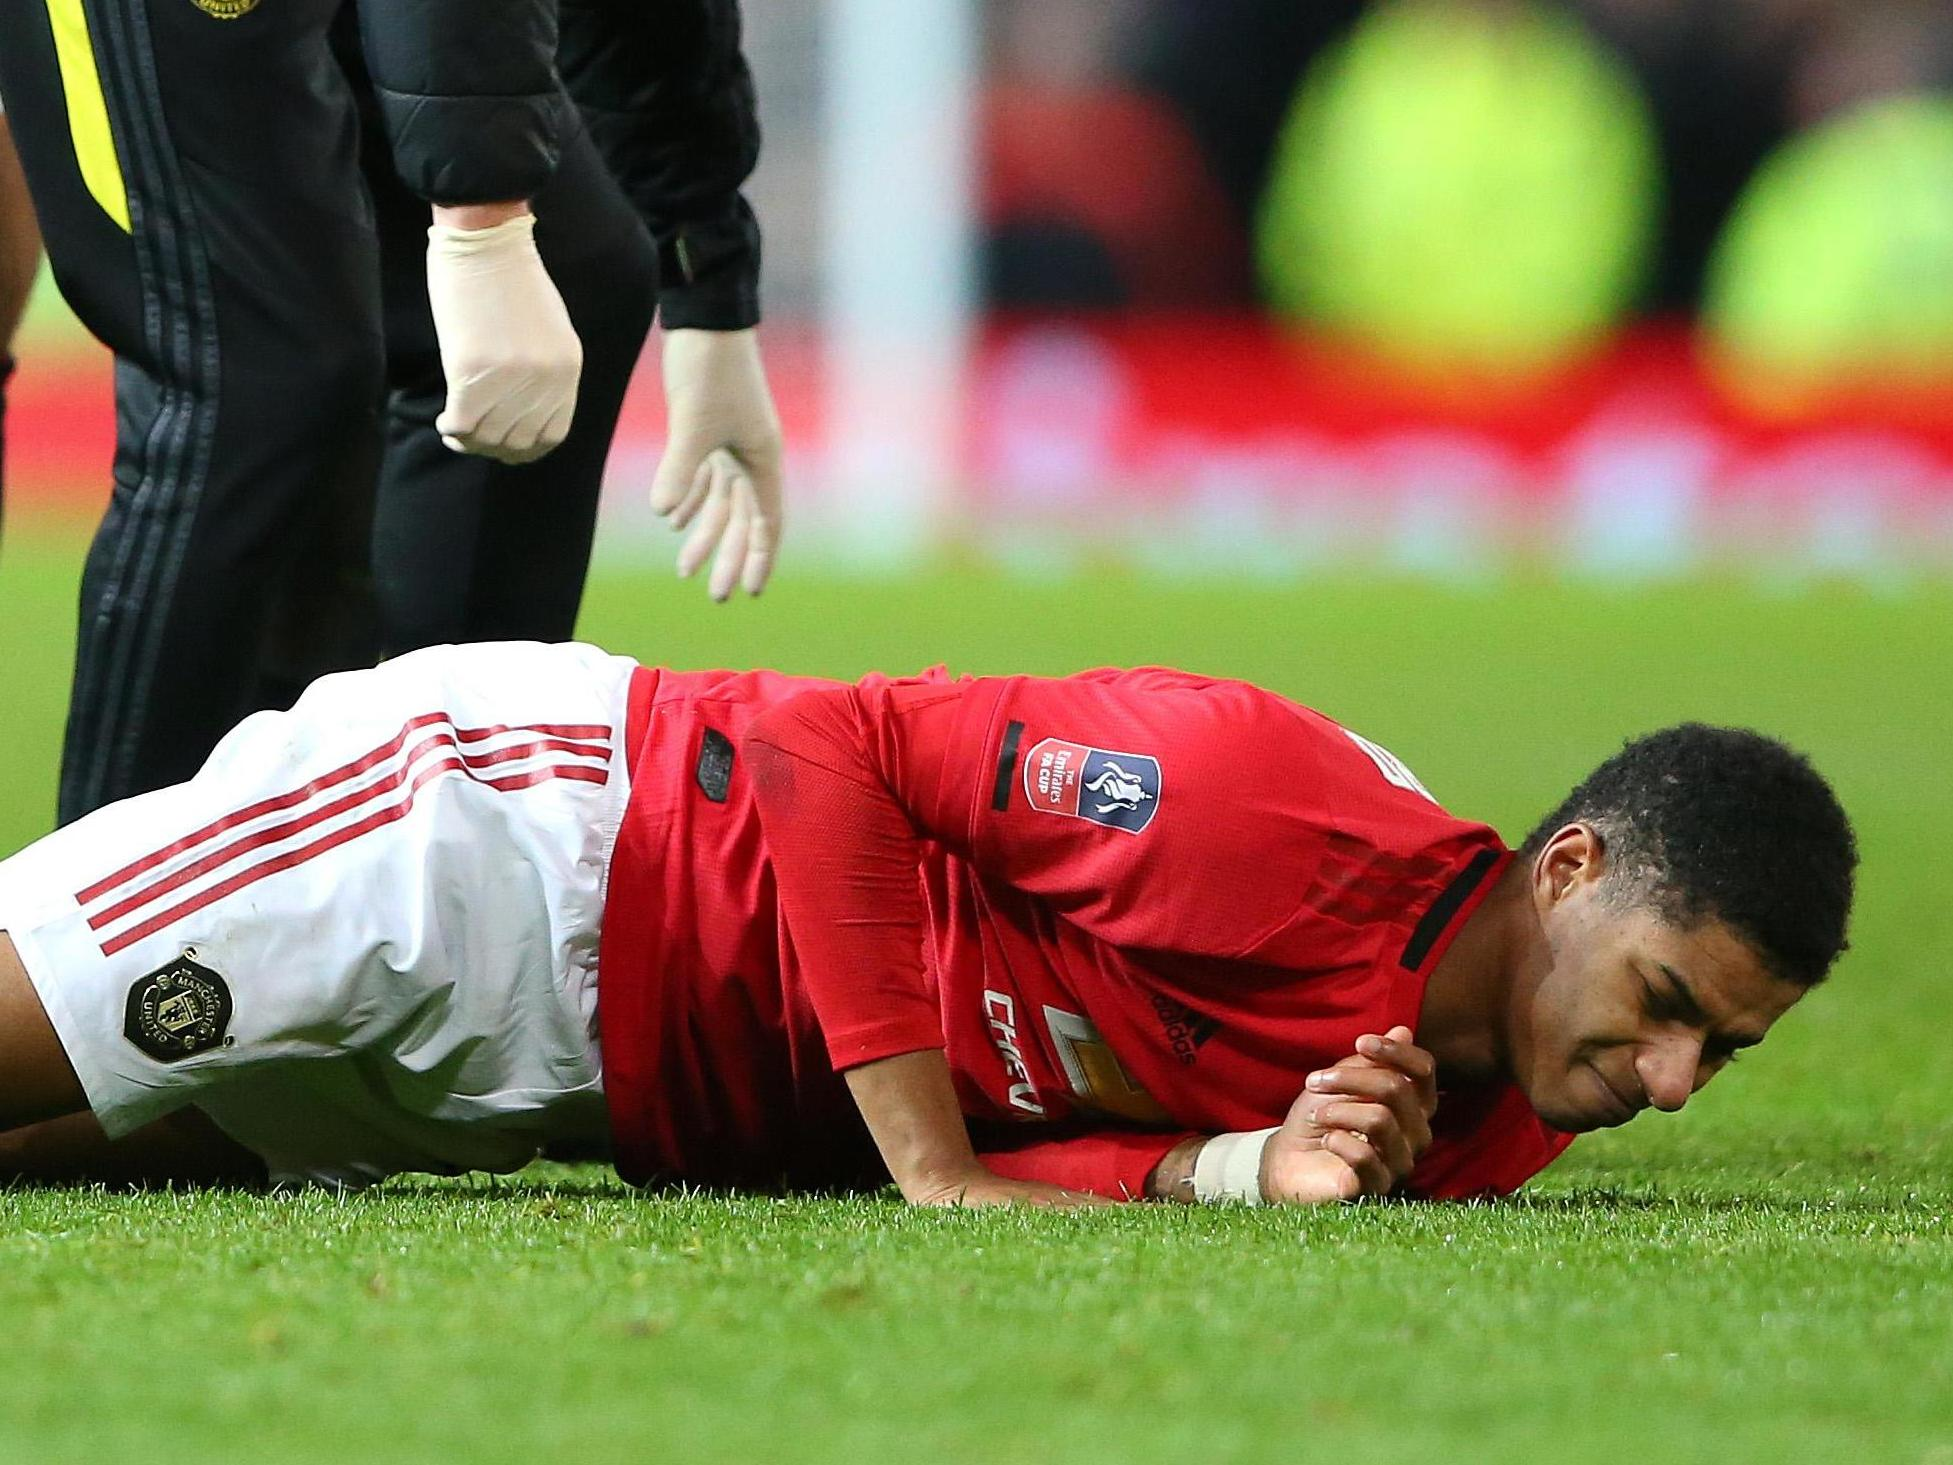 Marcus Rashford injury: Manchester United star 'touch and go' to be fit for England at Euro 2020